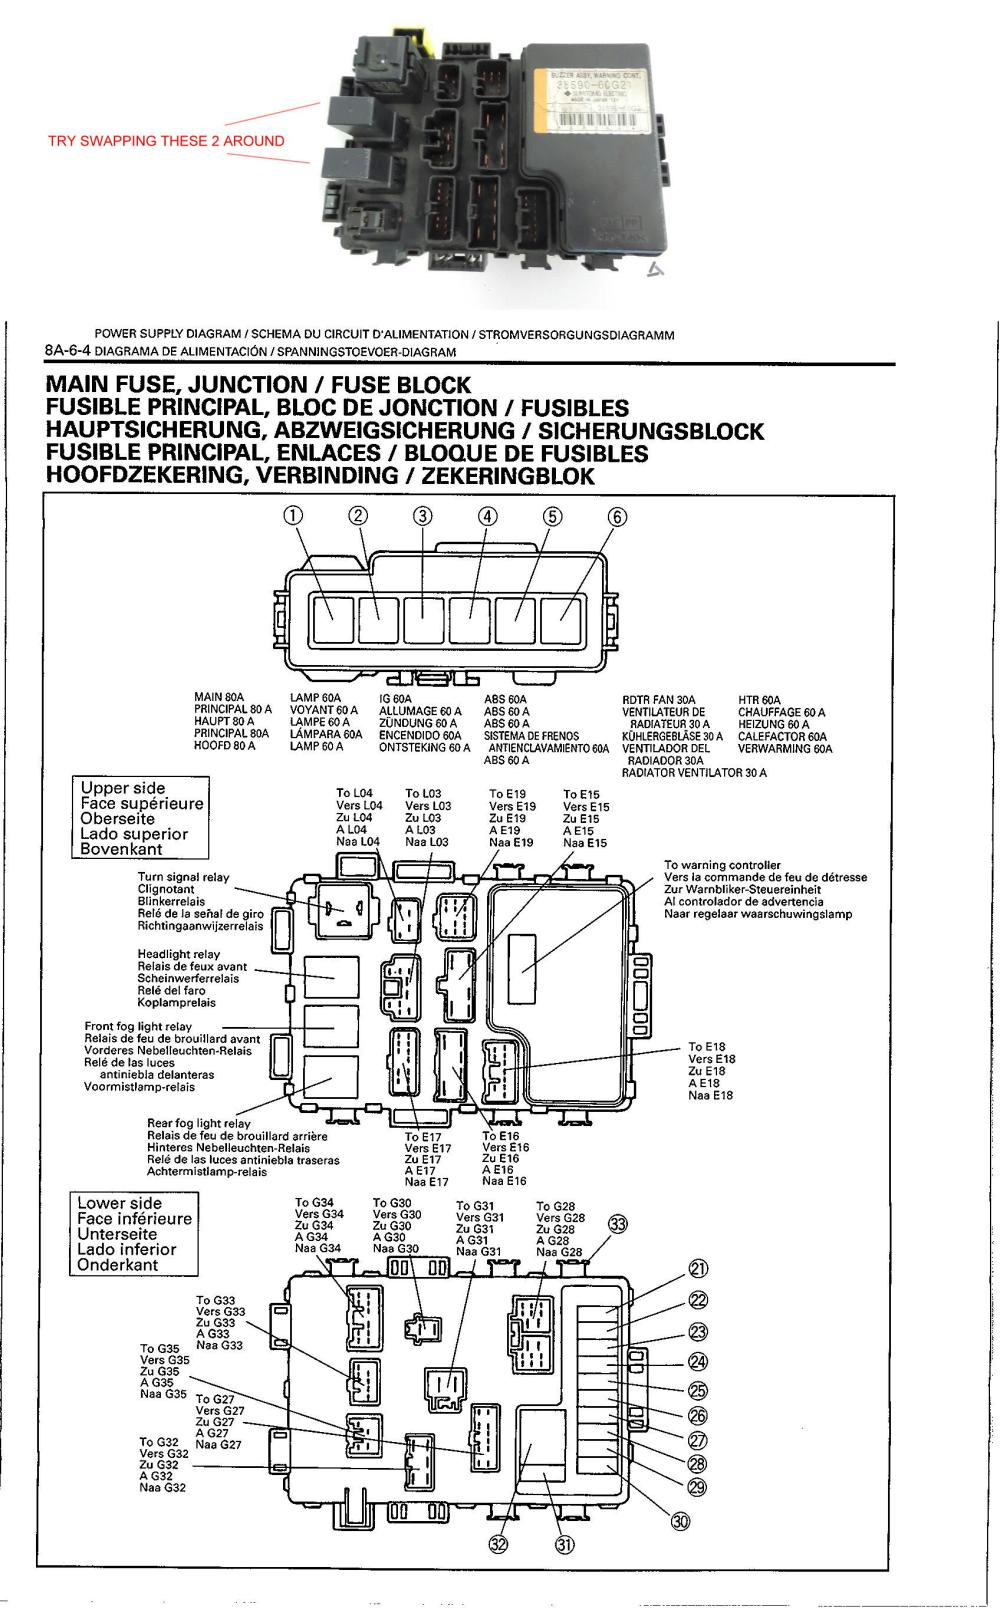 medium resolution of suzuki esteem fuse box location wiring diagram yer 2000 saturn sl fuse box suzuki esteem fuse